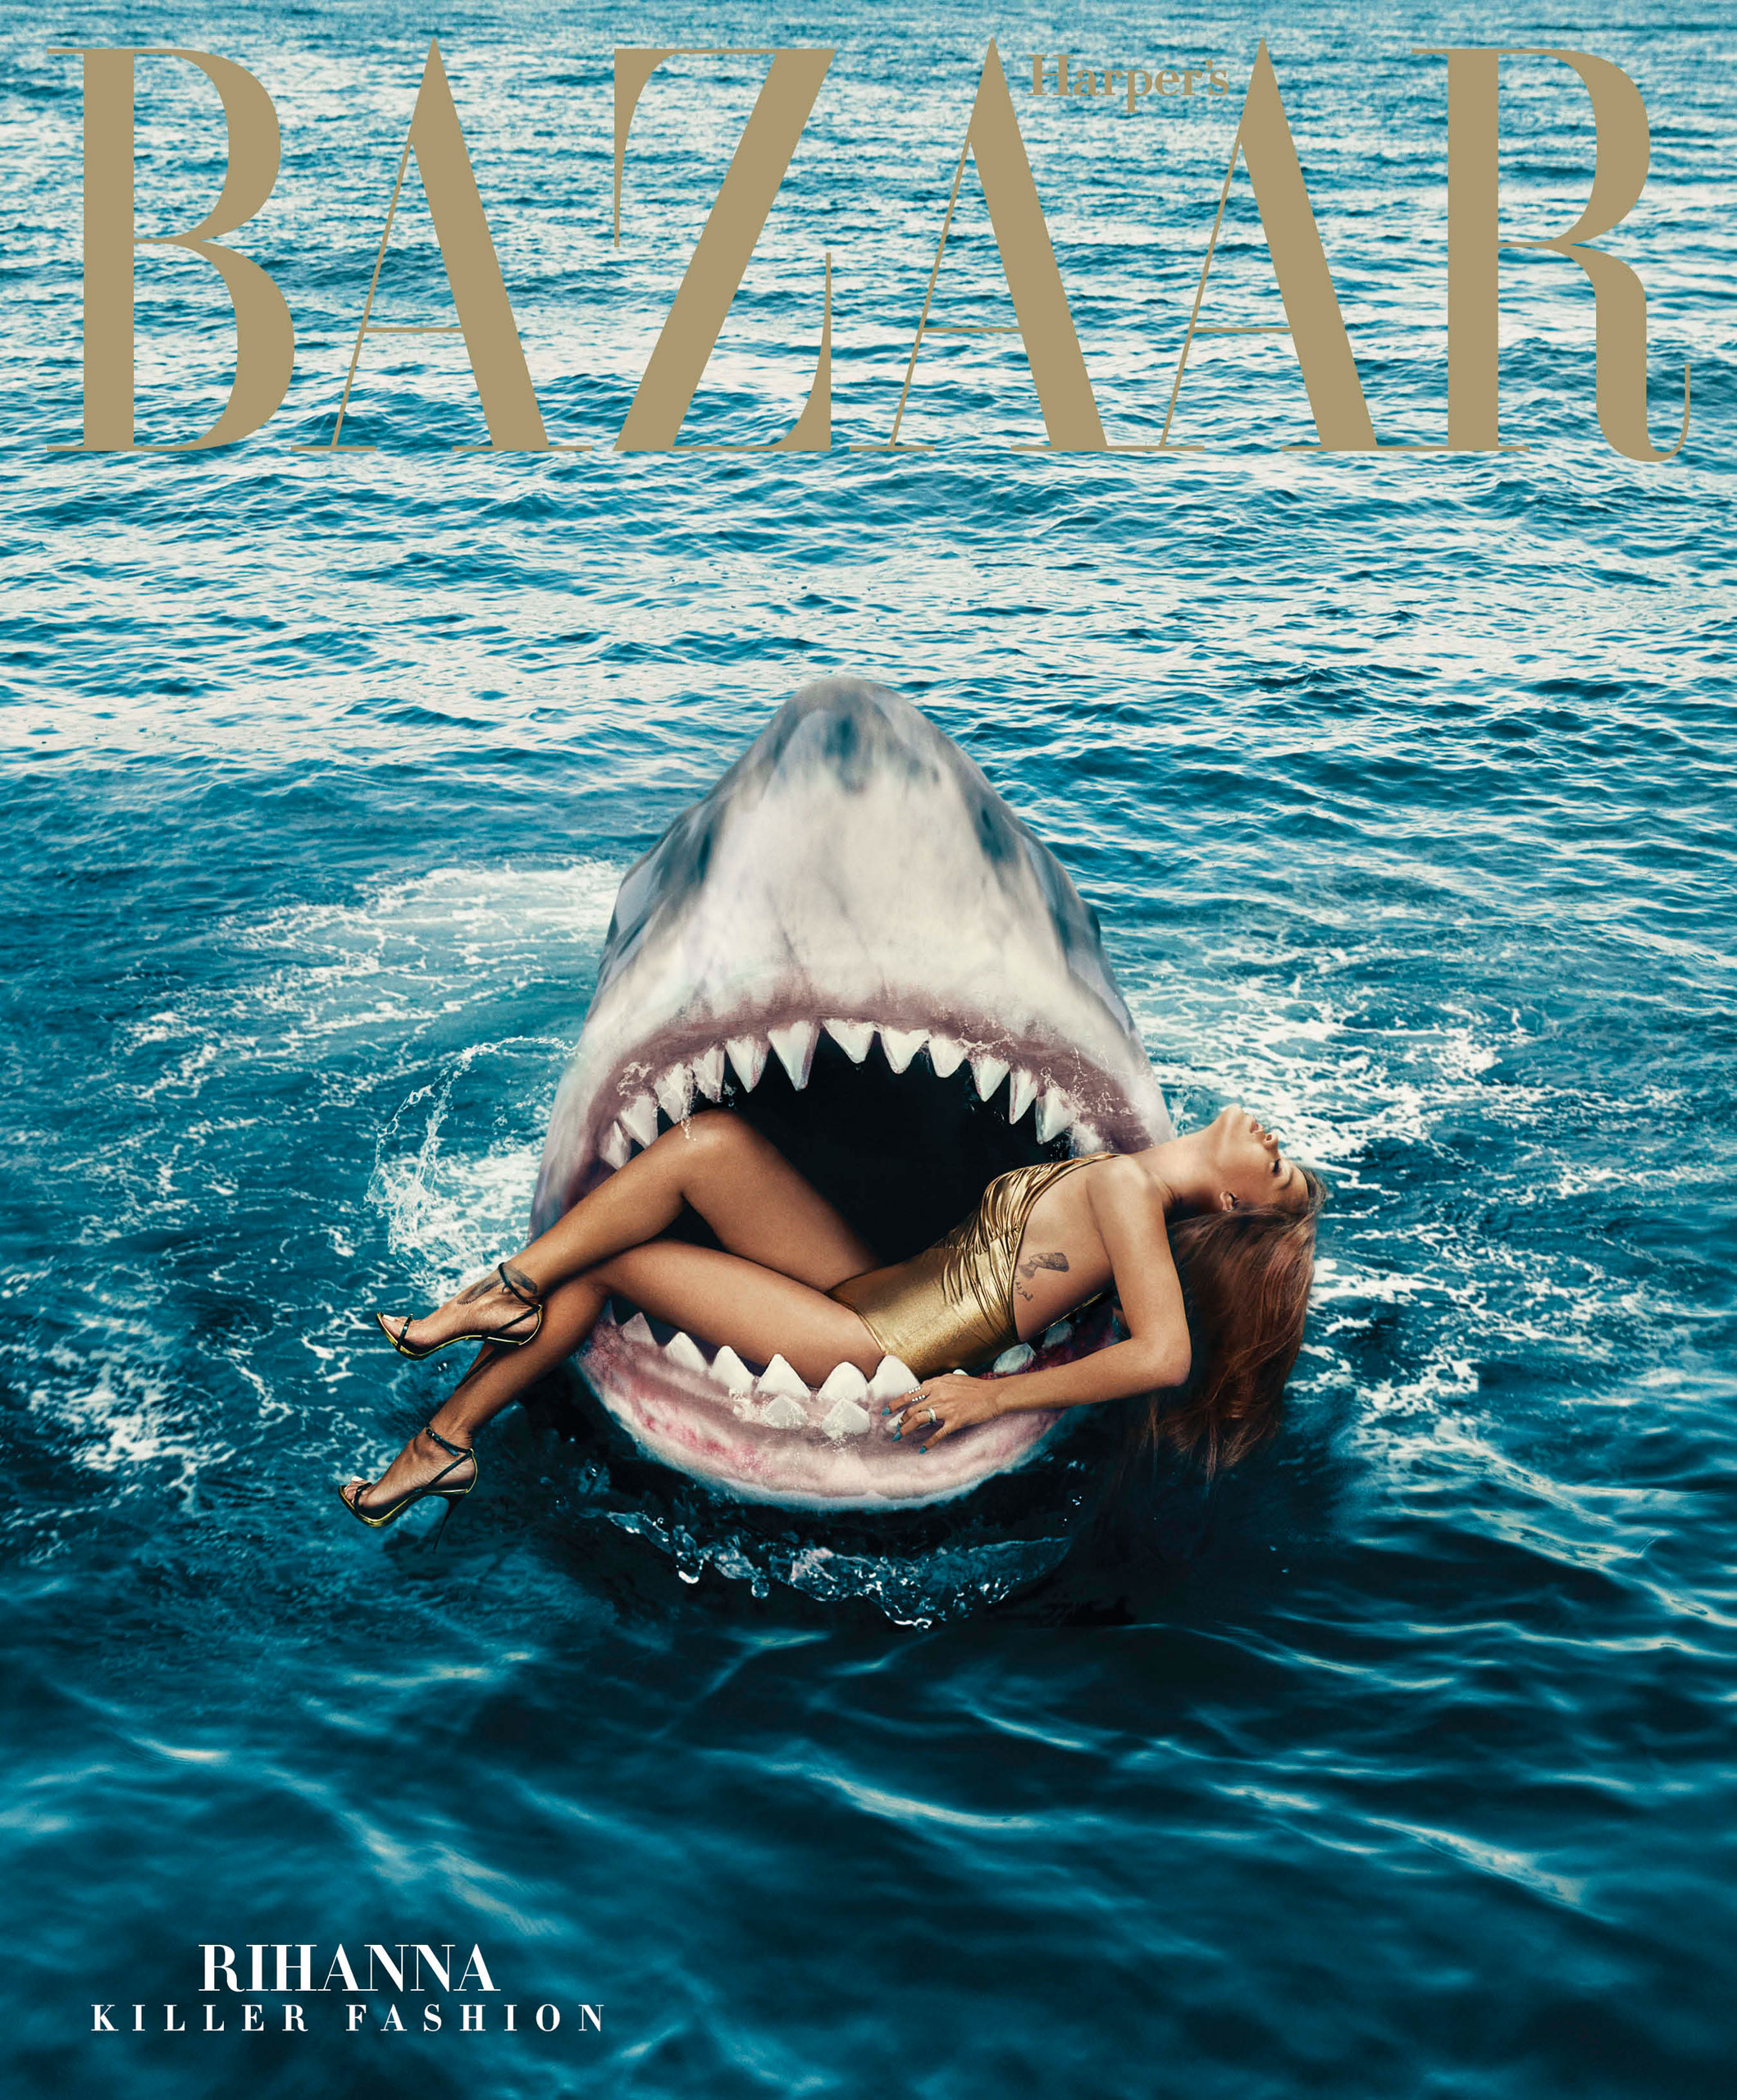 Harper's Bazaar, March 2015. Photograph by Norman Jean Roy.                                                              The idea to ask Rihanna to swim with sharks came from Glenda Bailey, Harper's Bazaar's Editor in Chief. She loves to ask celebrities to do mad things. The cover was my idea - I've always adored the behind-the-scenes pictures from Jaws, with Steven Spielberg goofing around in the shark's mouth. I love that subversion of pop culture iconography. Also, it was handily Jaws' 40th anniversary. So I suggested it to Glenda - including building a fiberglass shark - and she said yes. Rihanna's a total badass and loves a challenge. Her team was more worried than she was. She just thought it was  dope.  The picture was photographed last December, at the Tampa Aquarium. We shot the subscriber cover in the shark's mouth, and then Rihanna did the dive. The shark's mouth shot was the most straightforward - although we had to build the thing locally and drive it down to Florida. The dive was pretty crazy - Norman Jean Roy, our photographer, has a scuba license so got in the water before Rihanna did. She did a number of dives, but one of the supervising divers grazed one of the sharks with his foot, resulting in them circling her. So it was swiftly up and out and over. The cover was exactly how I envisioned it. Against all odds! It's one of the best covers we've ever done. And why I do this job.                                                              —Laura Brown, Executive Editor, Special Projects, Harper's Bazaar